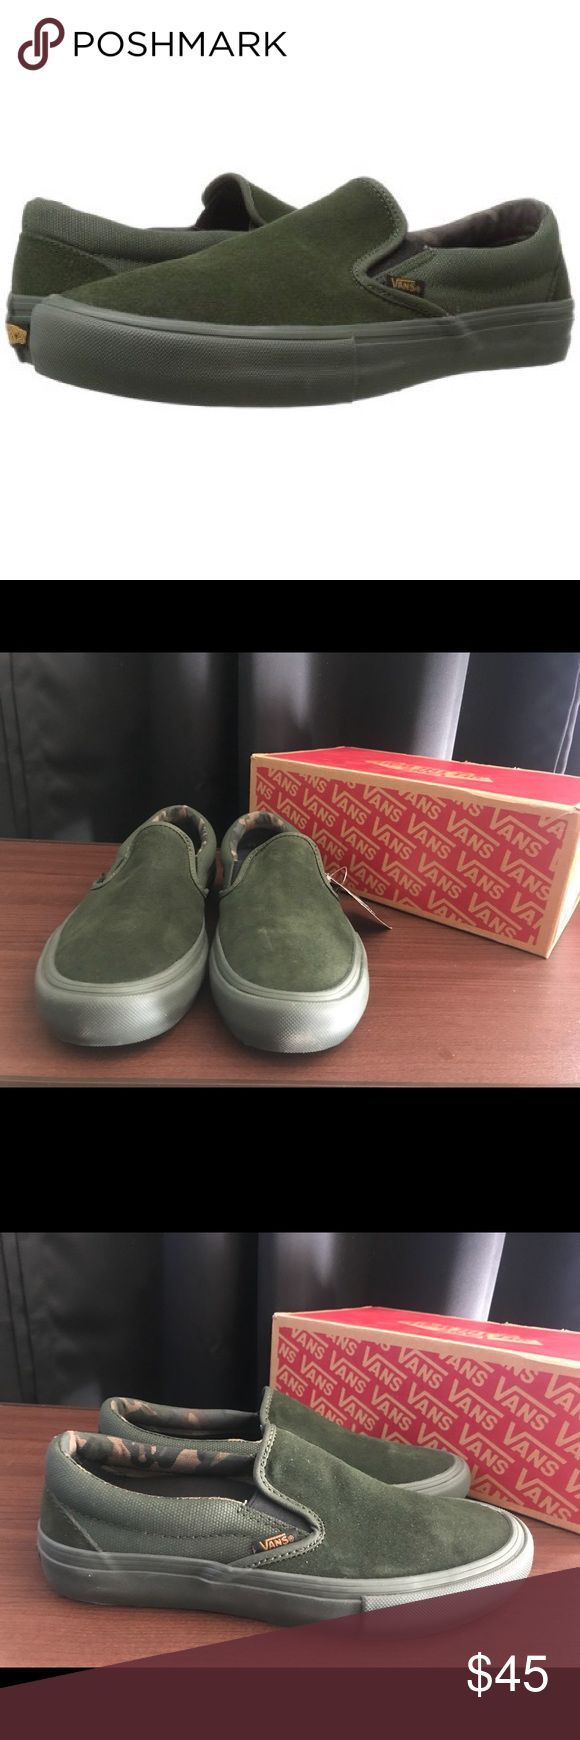 Vans Slip-On Pro Vans Slip-On Pro Camo/Rosin/Green Shoes are Unisex, the box has the Mens size on it. Vans Shoes